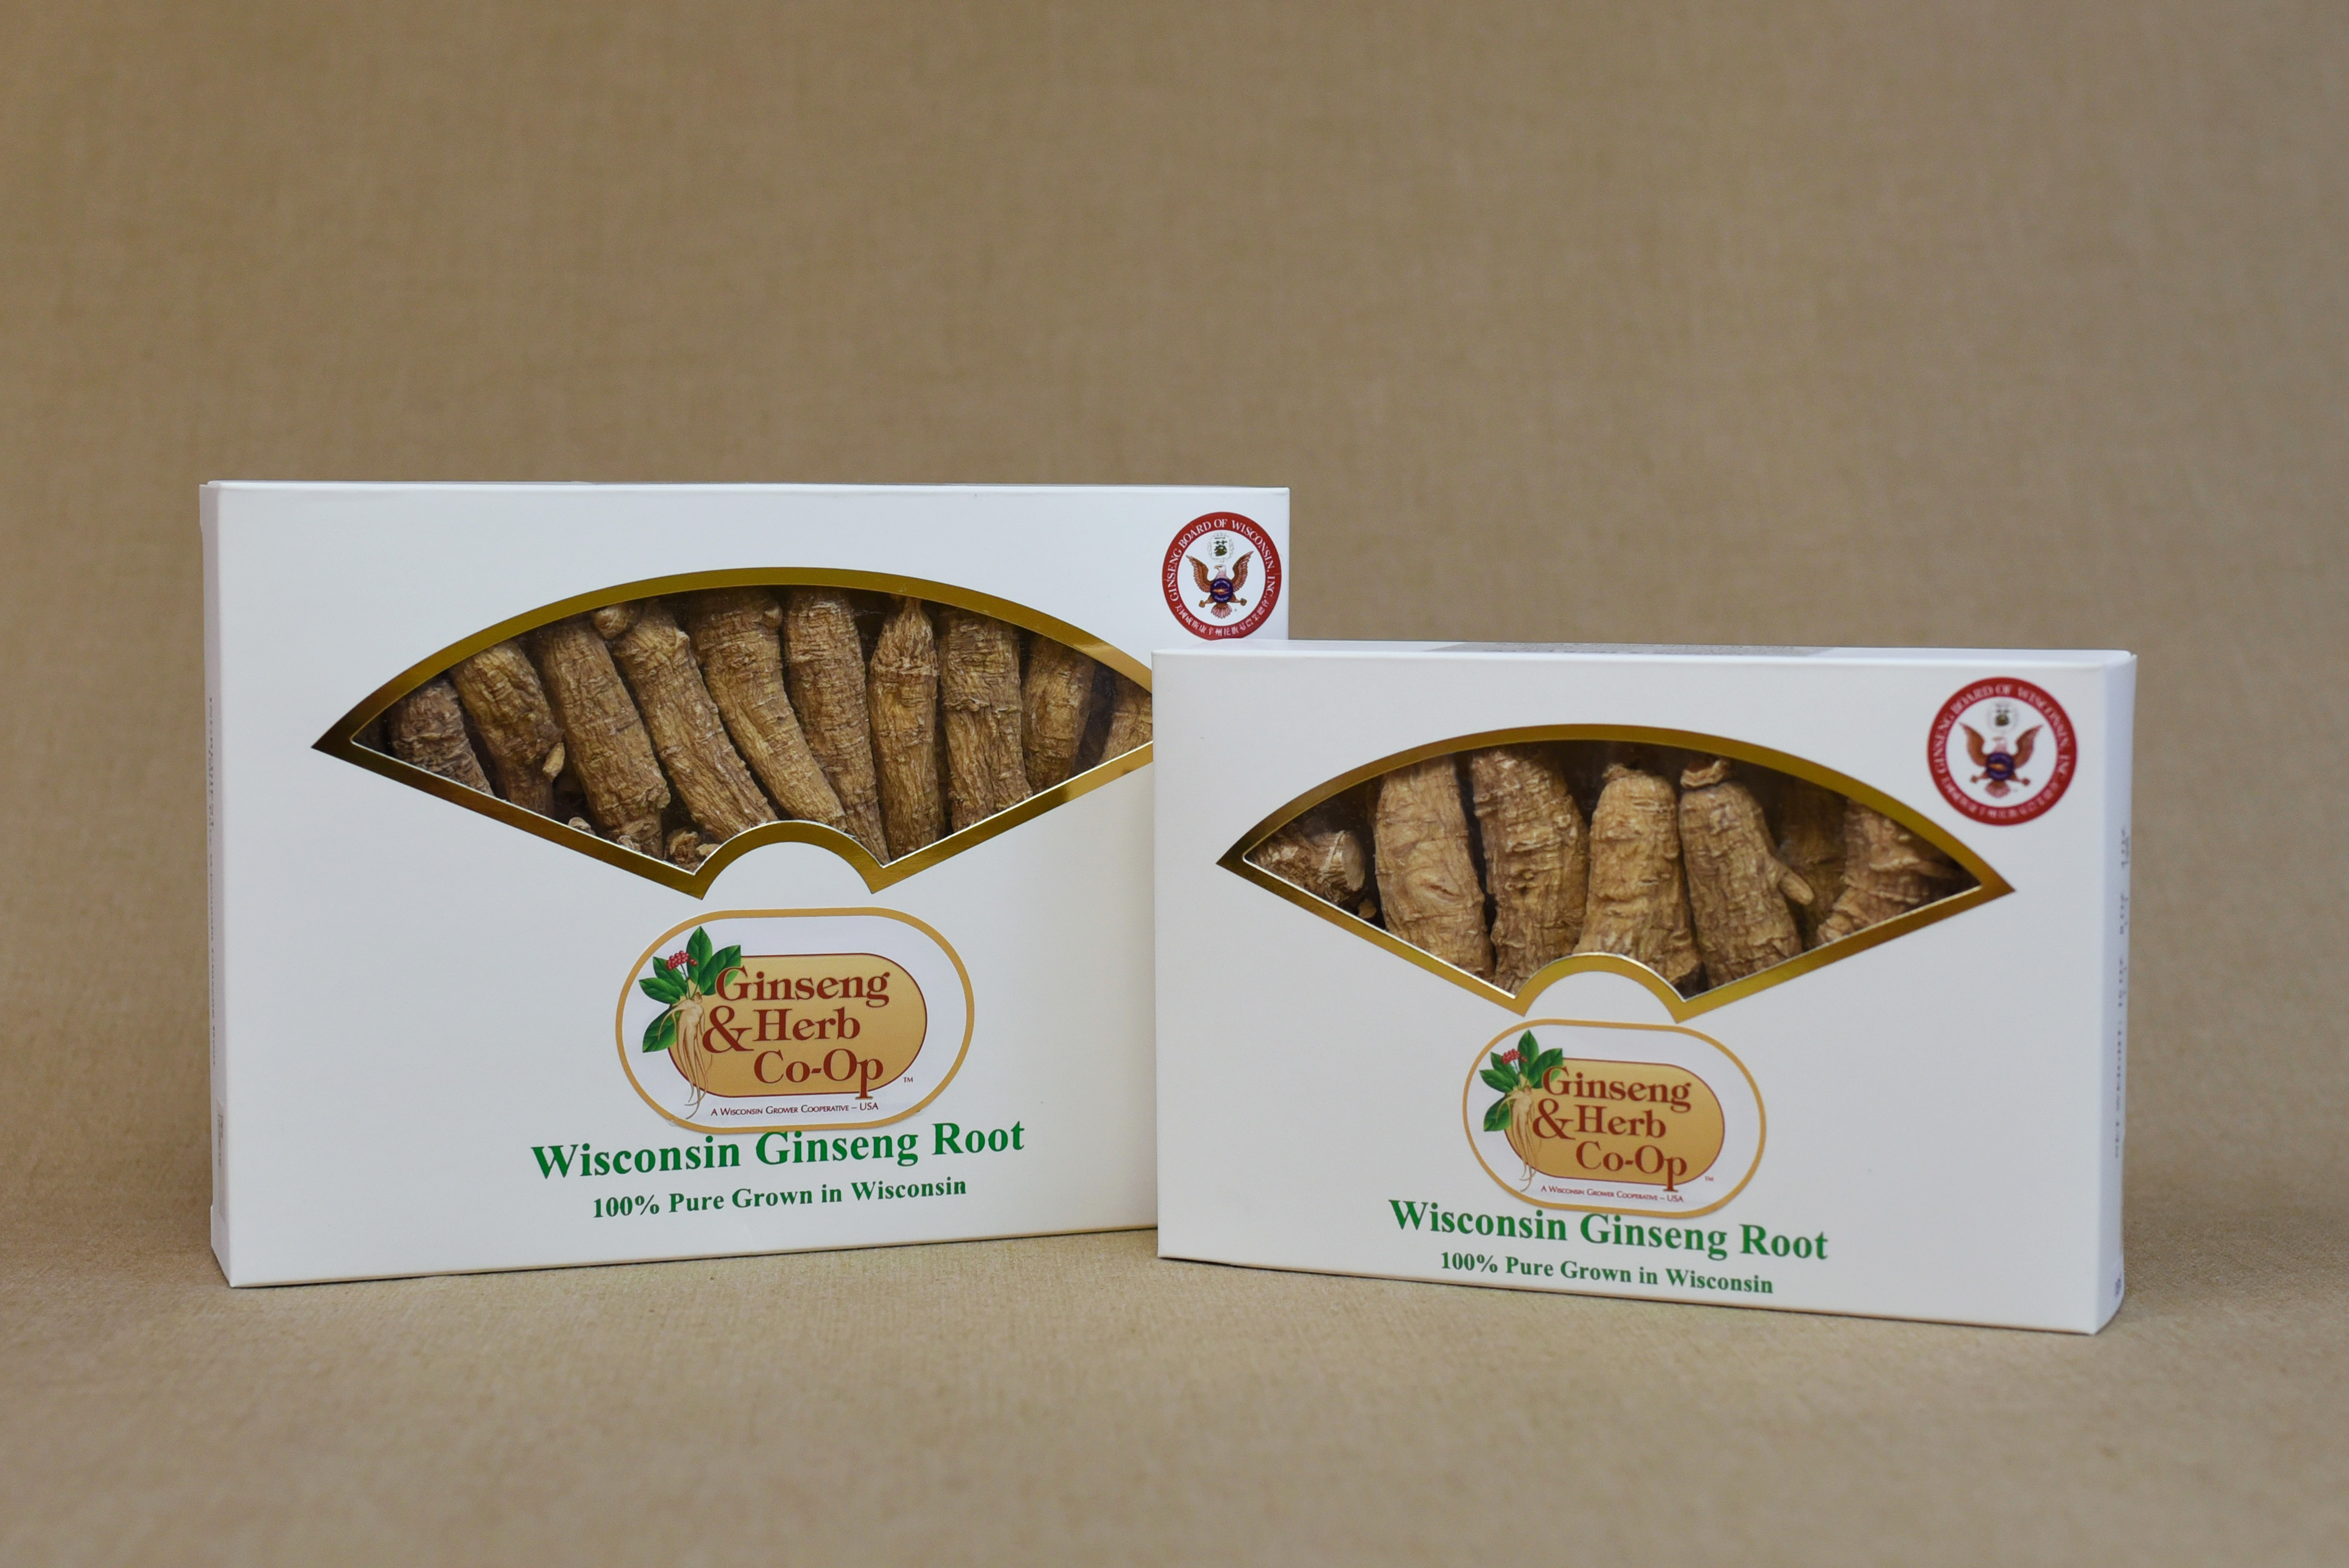 Buy Now! high quality Wisconsin Ginseng roots in Wausau, WI